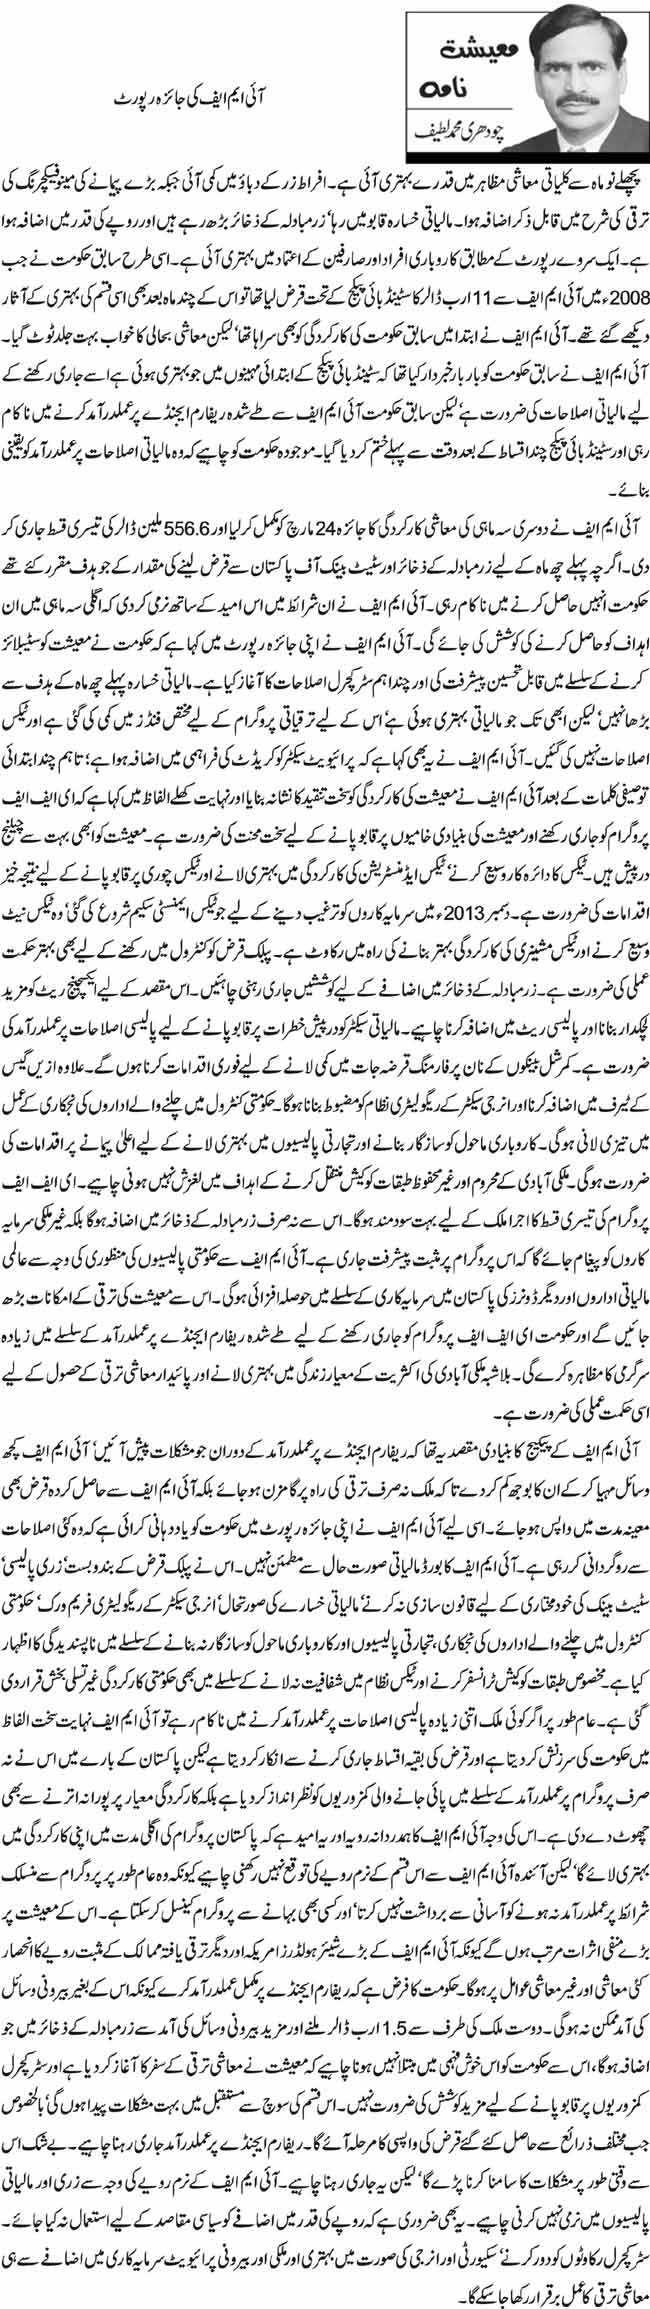 IMF Ki Jaiza Report - Chaudhry Muhammad Lateef - 5th April 2014